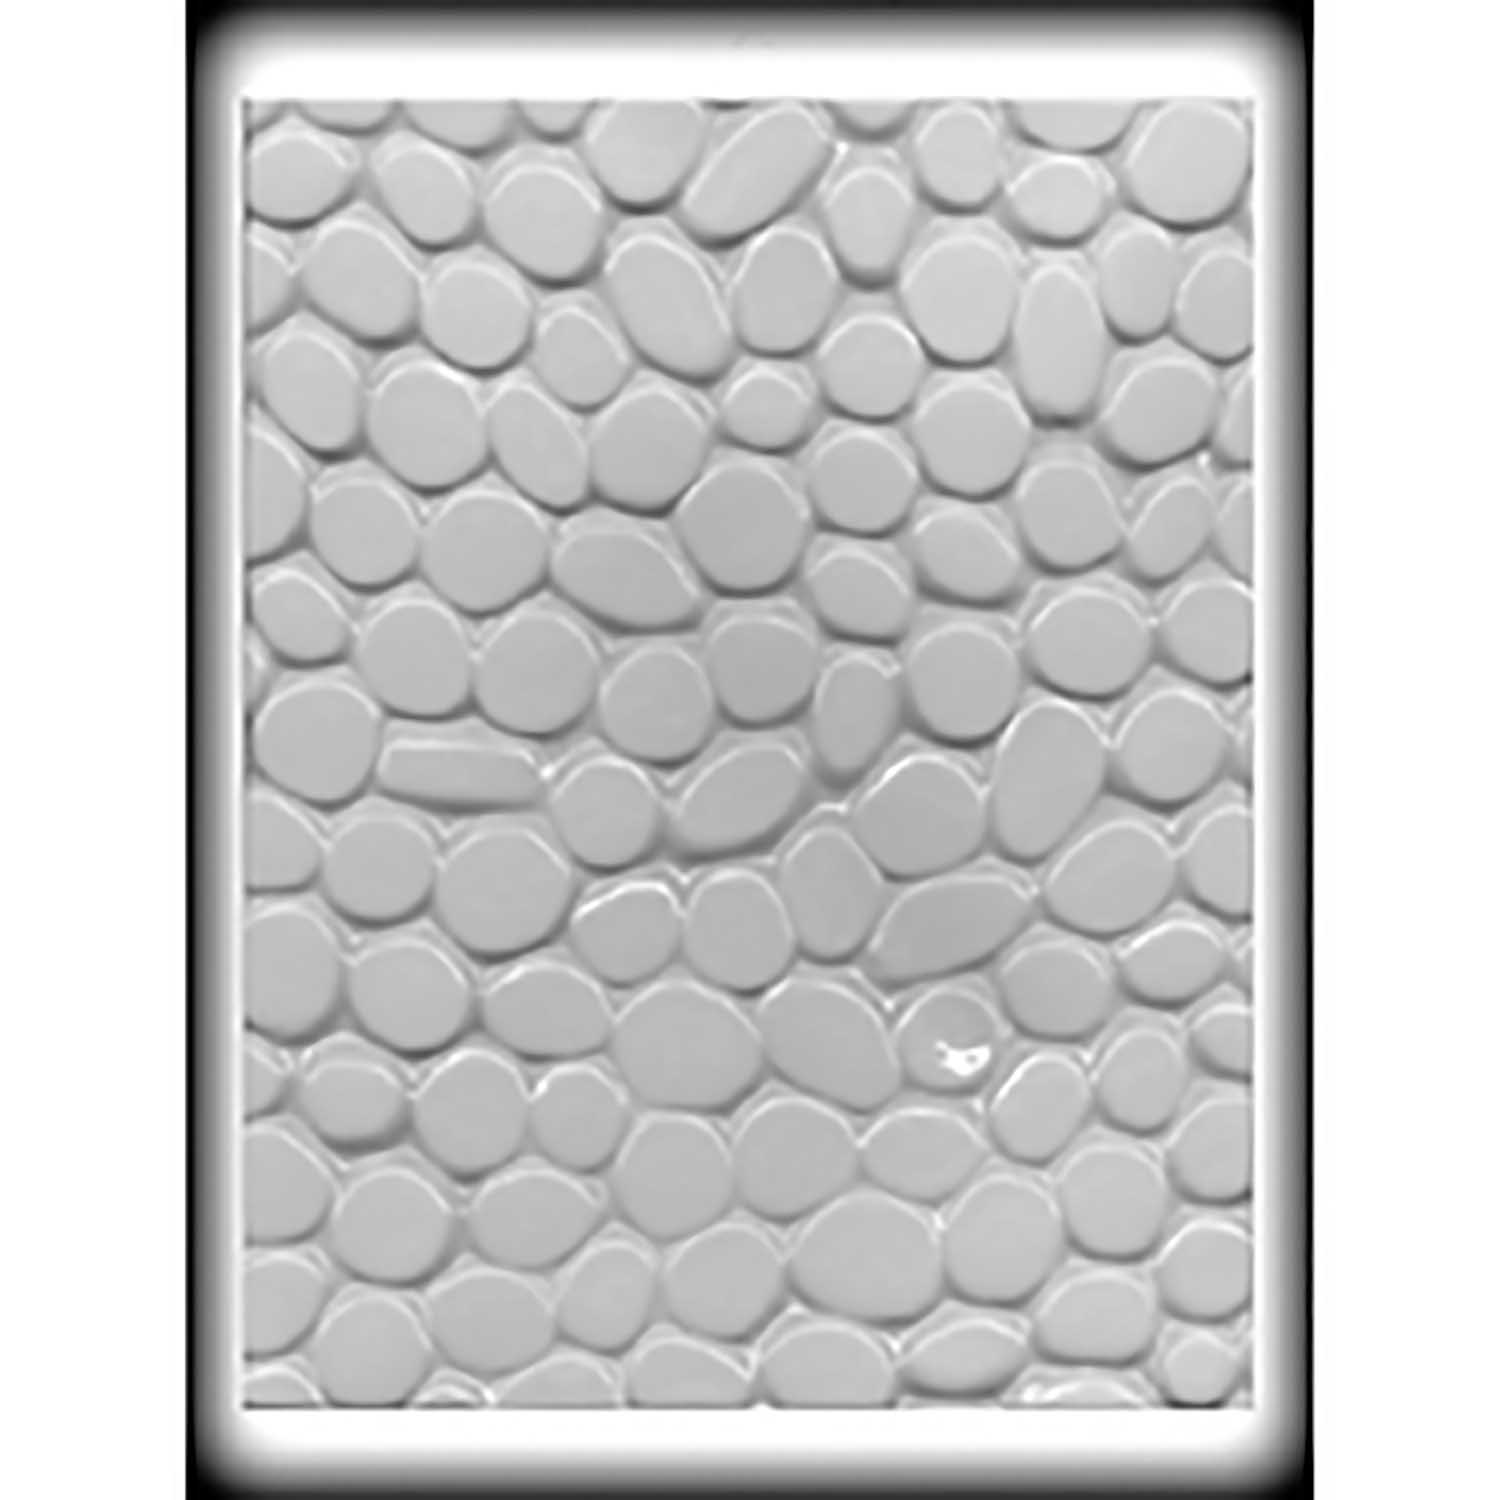 Hard Candy/Cookie Mold-Cobblestone